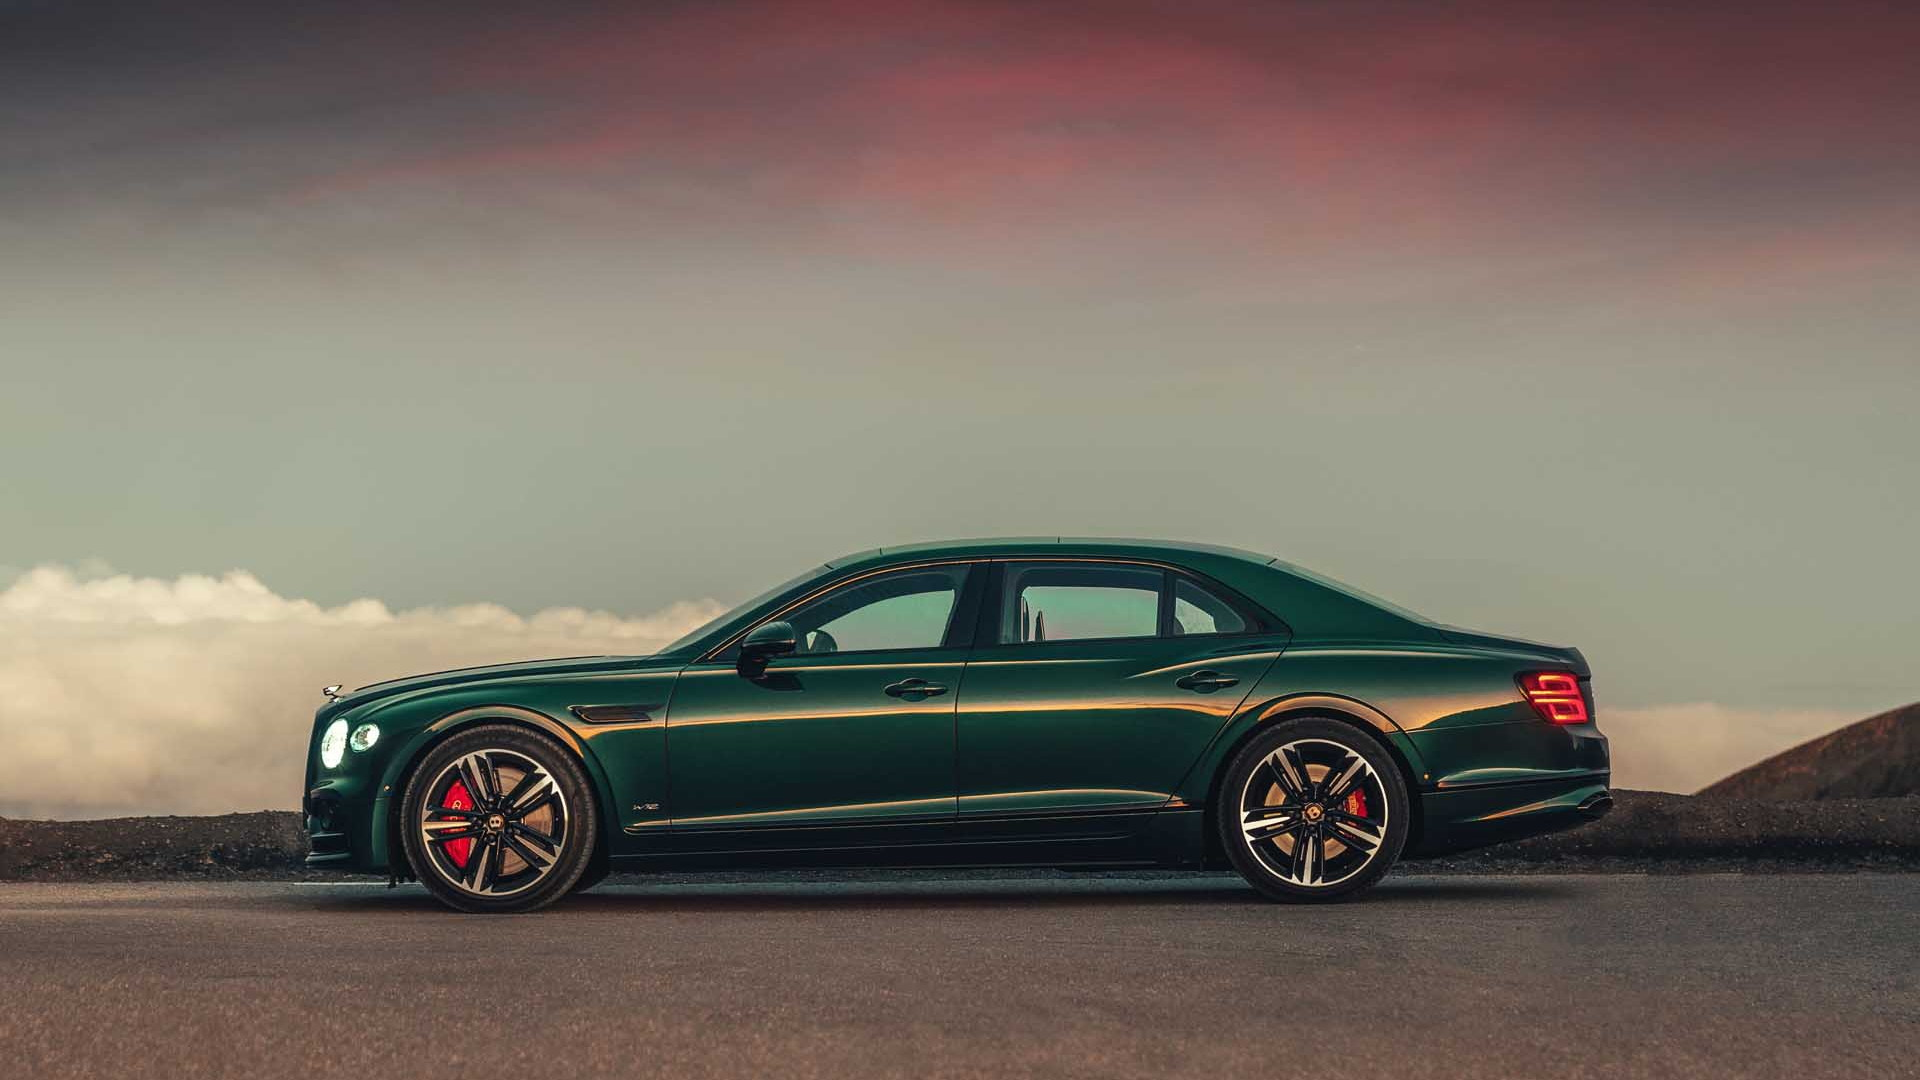 2020 Bentley Flying Spur Is Sporty And Stately In A Single Package